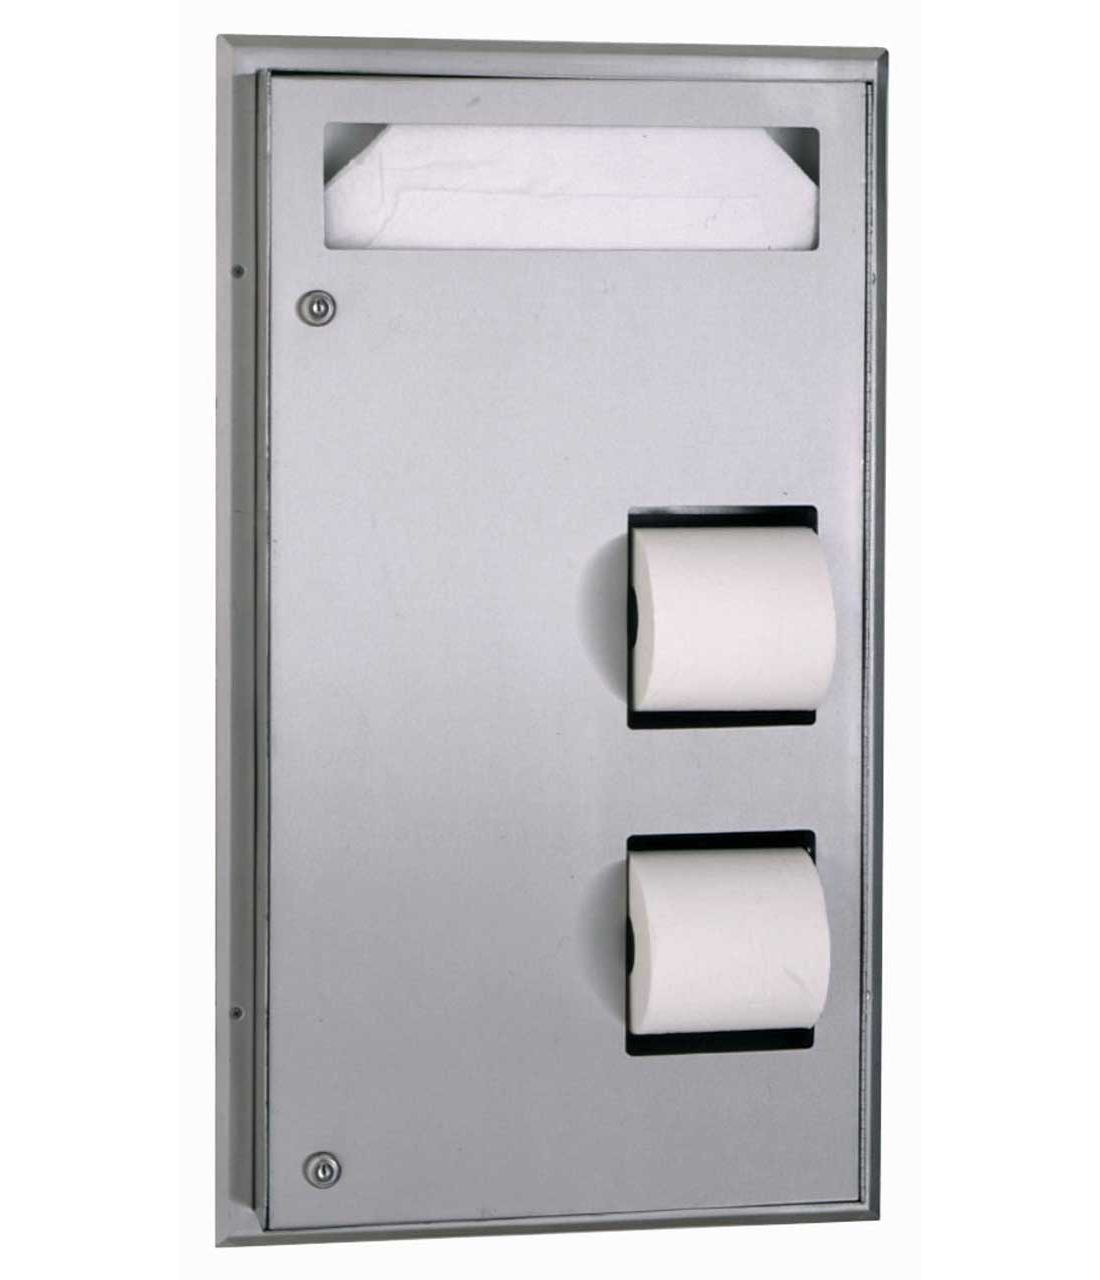 Bobrick B-347 Partition Mounted Seat Cover Dispenser and Toilet Tissue Dispenser